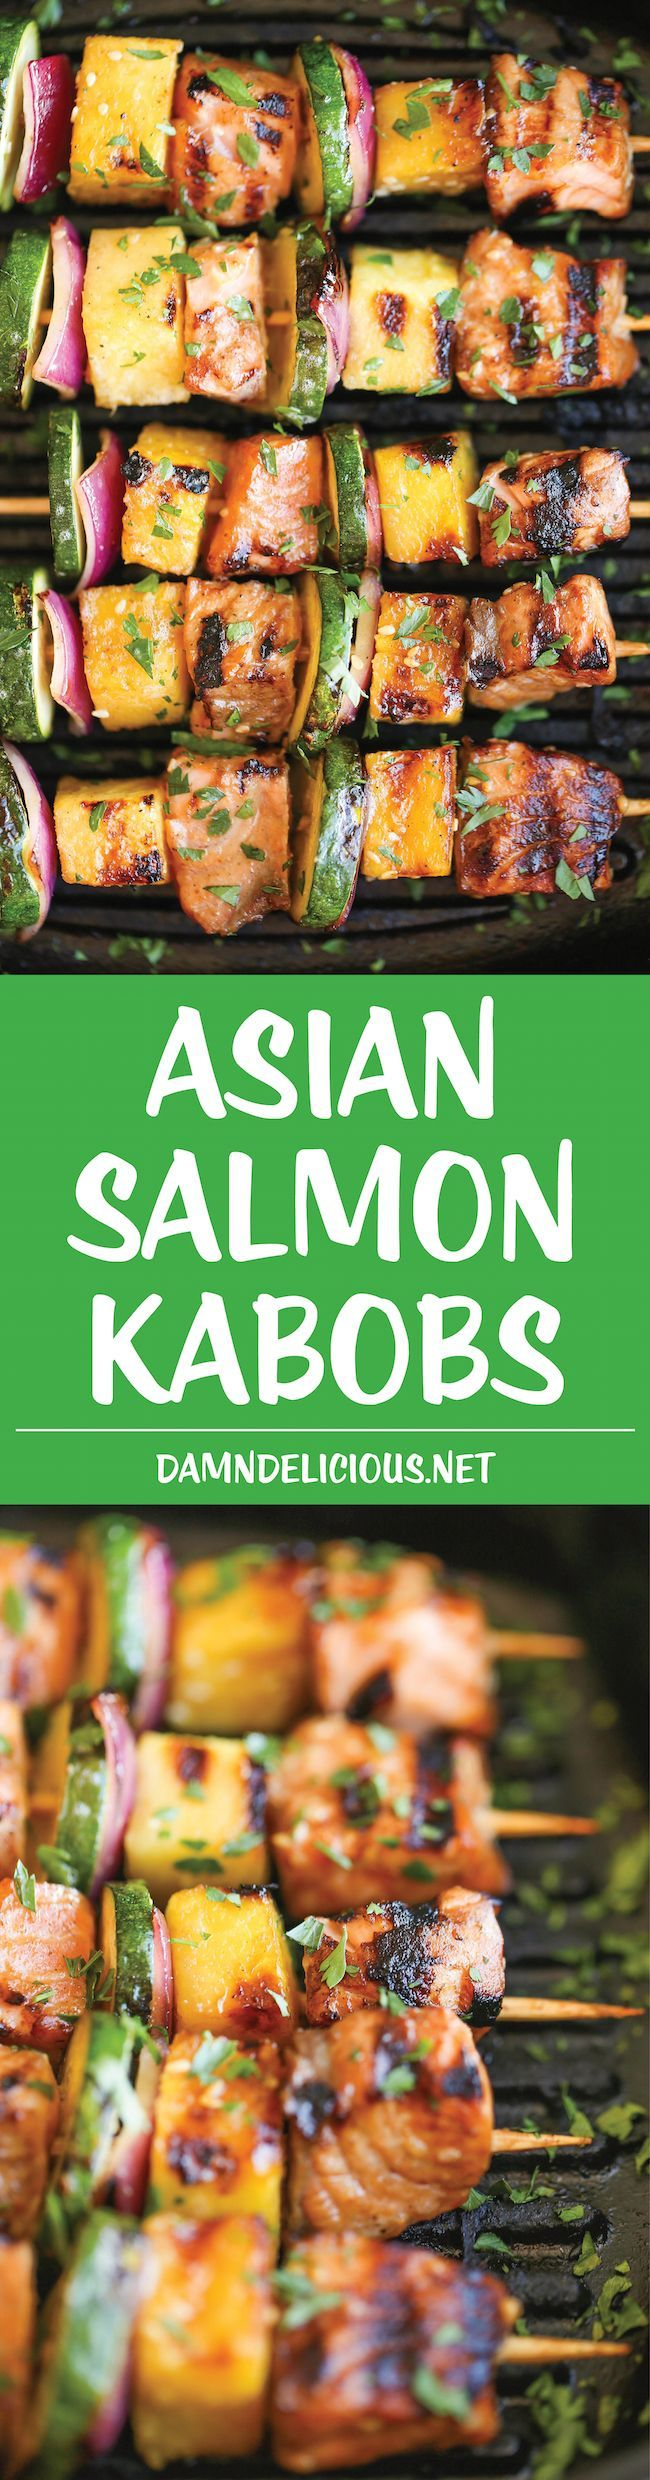 Asian Salmon Kabobs - These salmon kabobs are easy to make, hearty, light and healthy. And they're packed with tons of vibrant flavors! 368.1 calories. Grill,grilling,#bbq,#grill